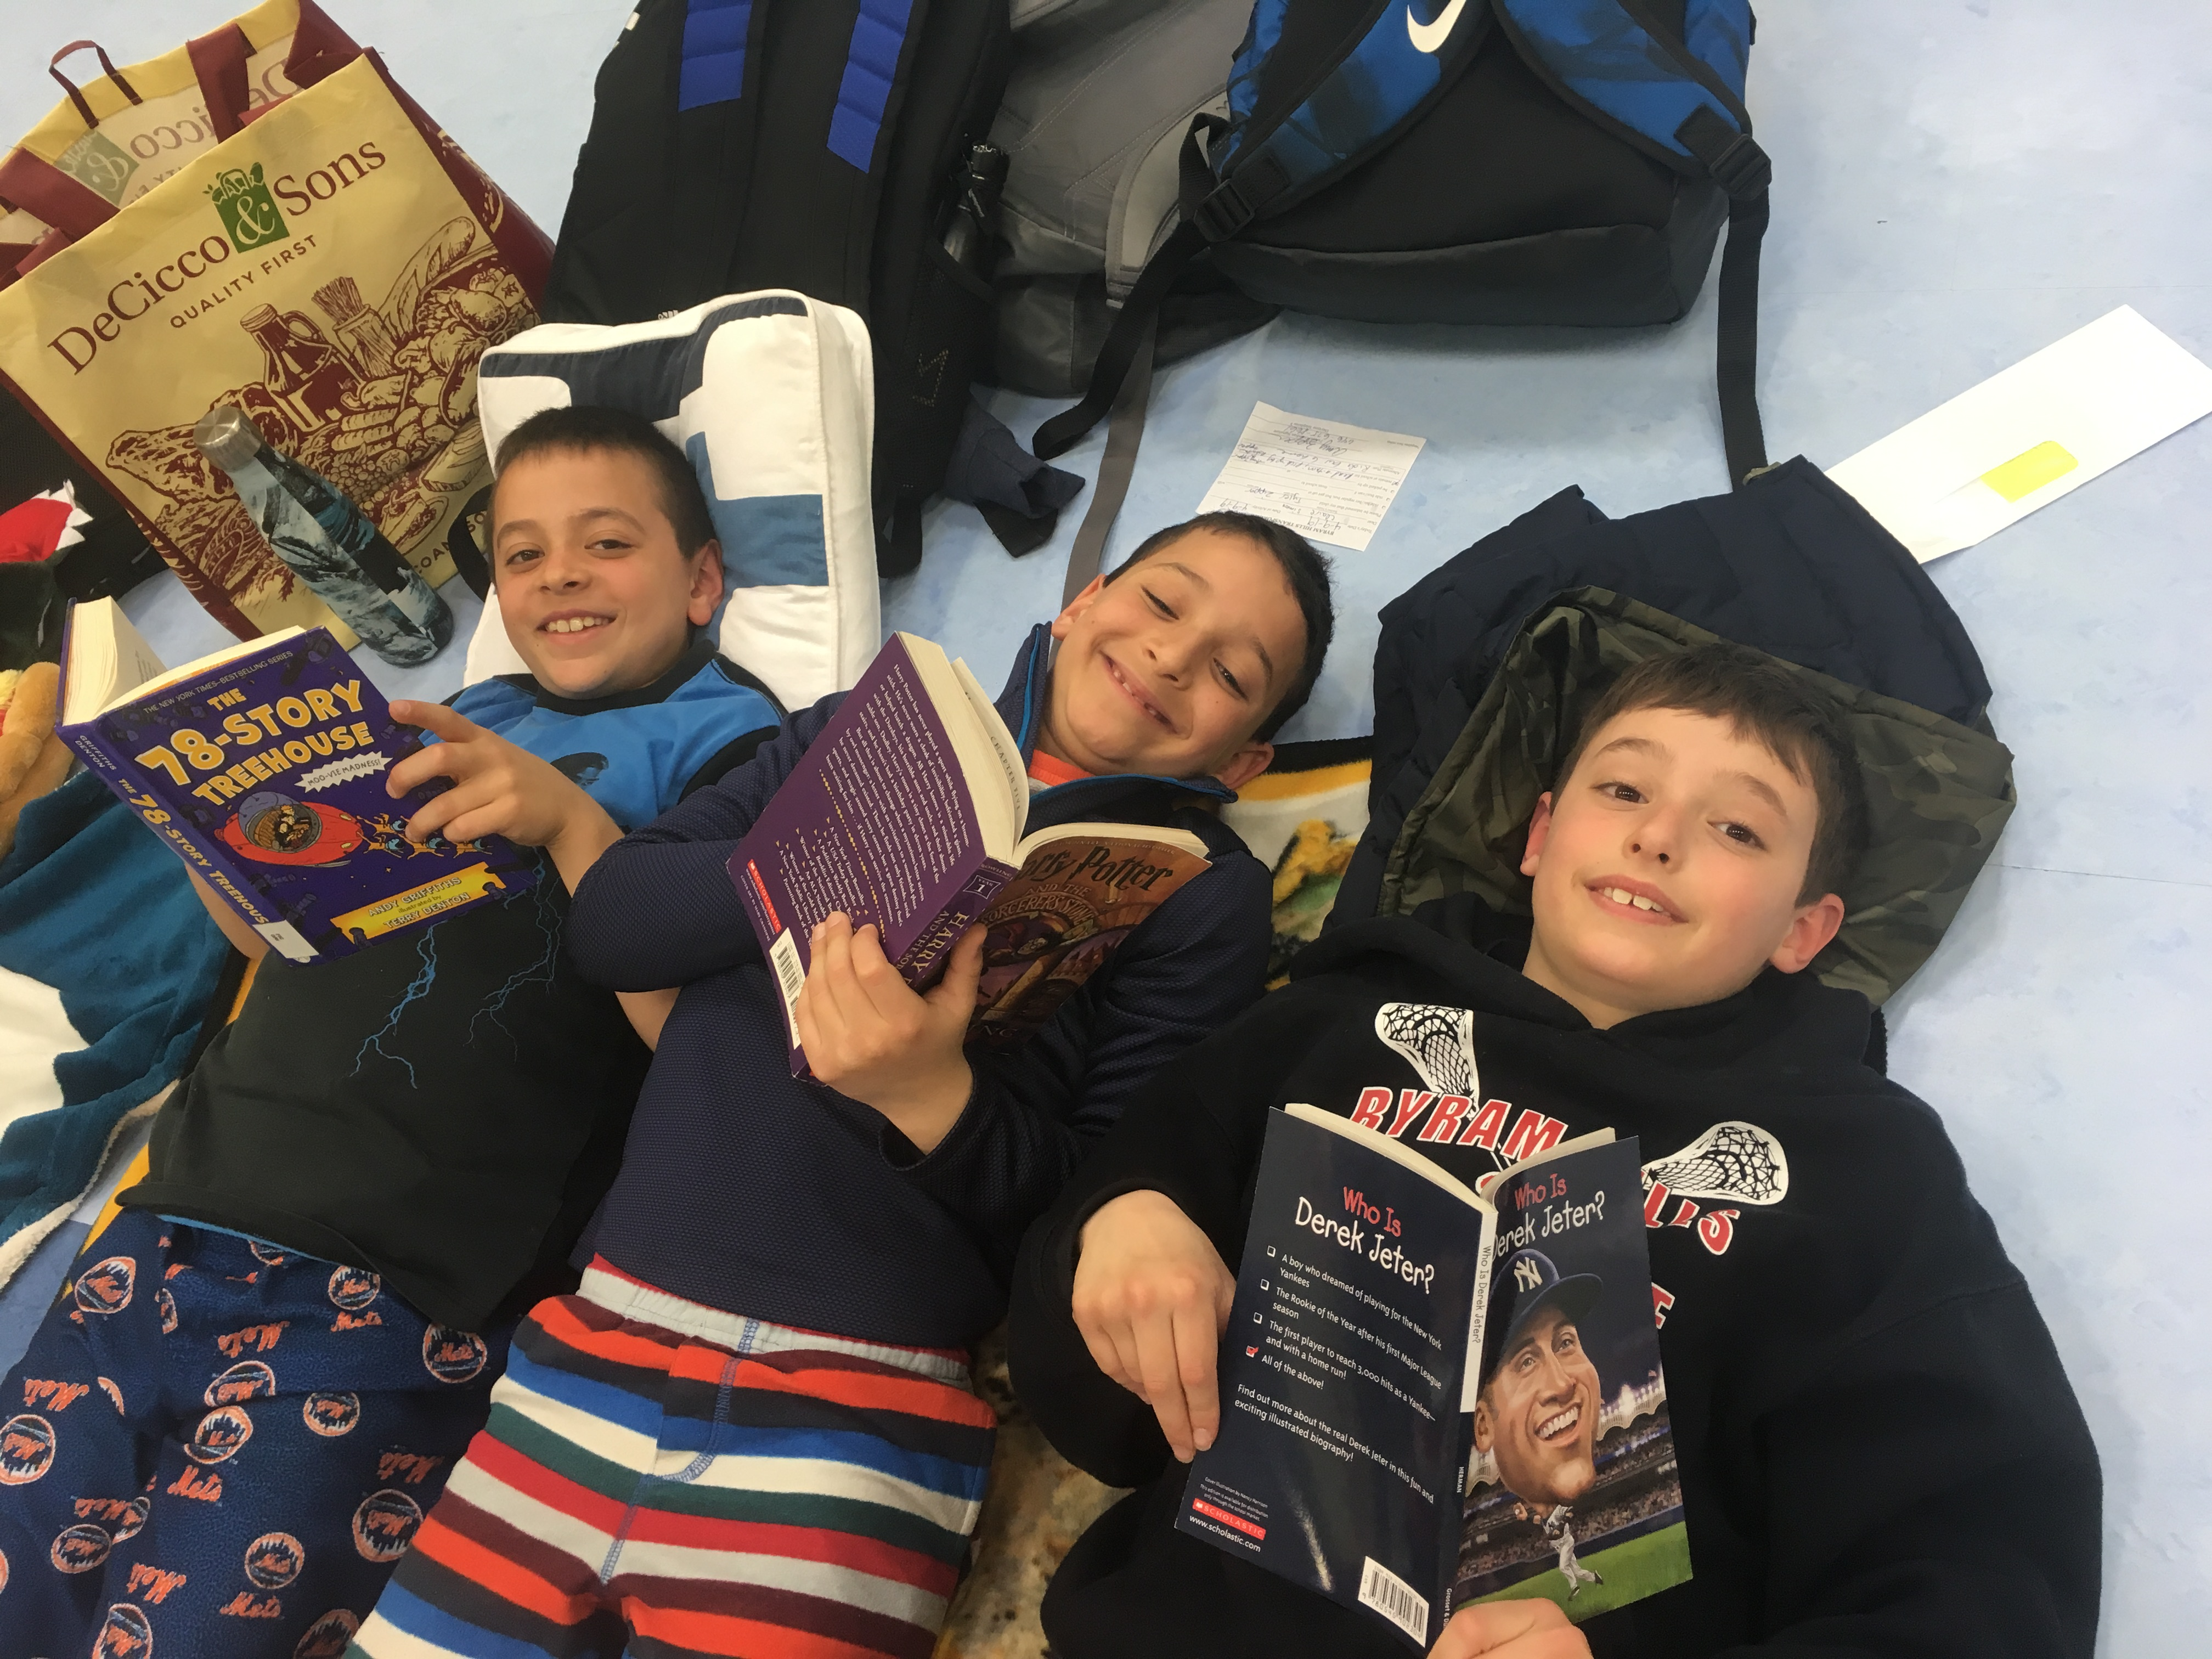 Read-a-Thon at Wampus Elementary School Benefits Leukemia & Lymphoma Society